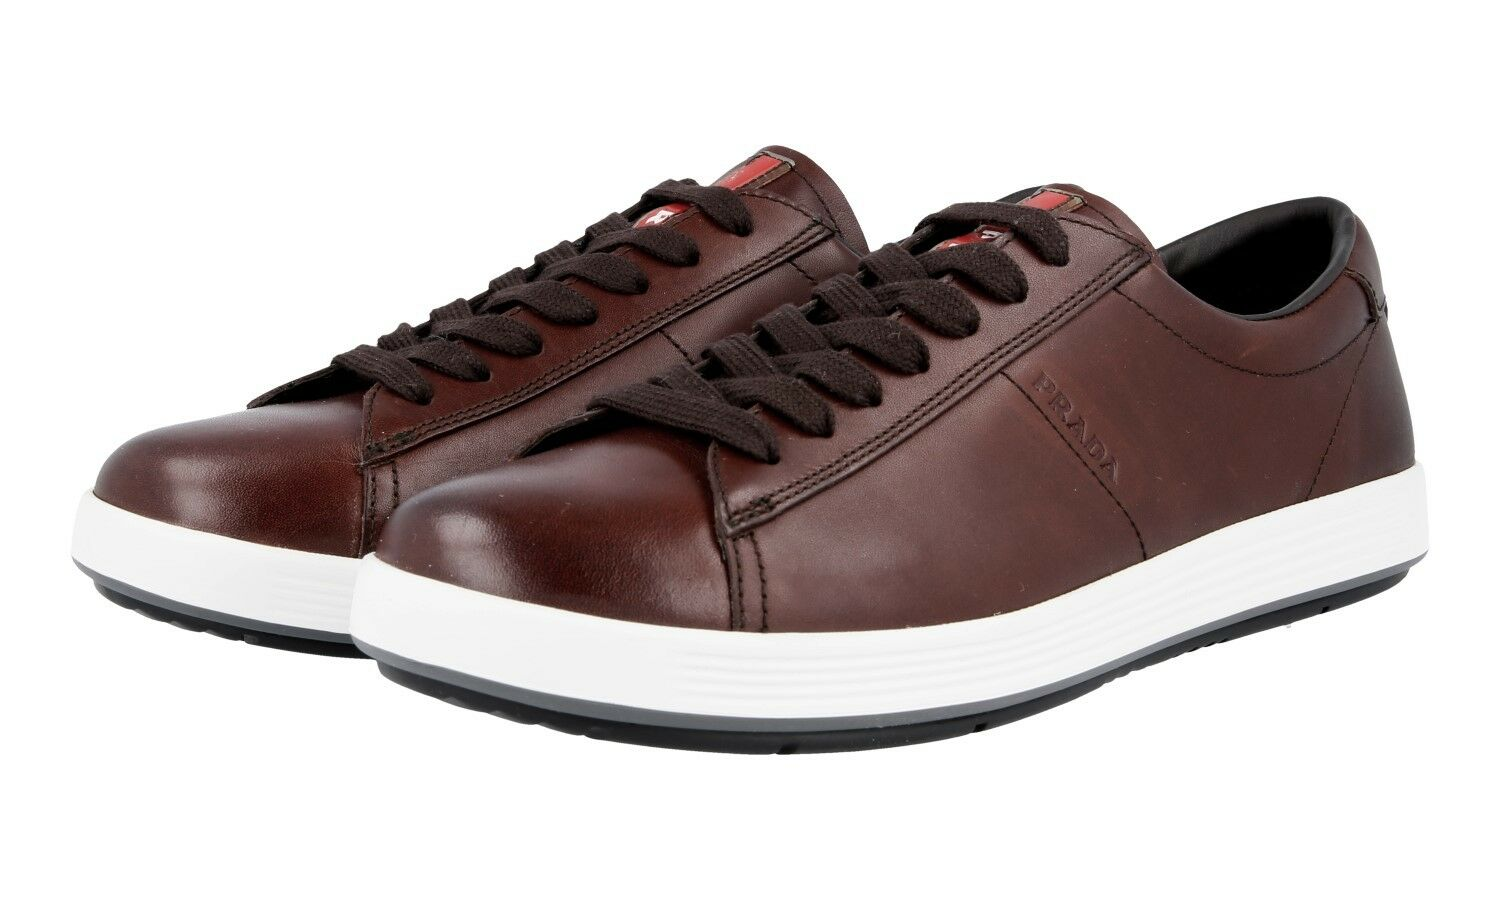 AUTHENTIC LUXURY BROWN PRADA SNEAKERS SHOES 4E2860 BROWN LUXURY NEW 7 41 41,5 ab5e26